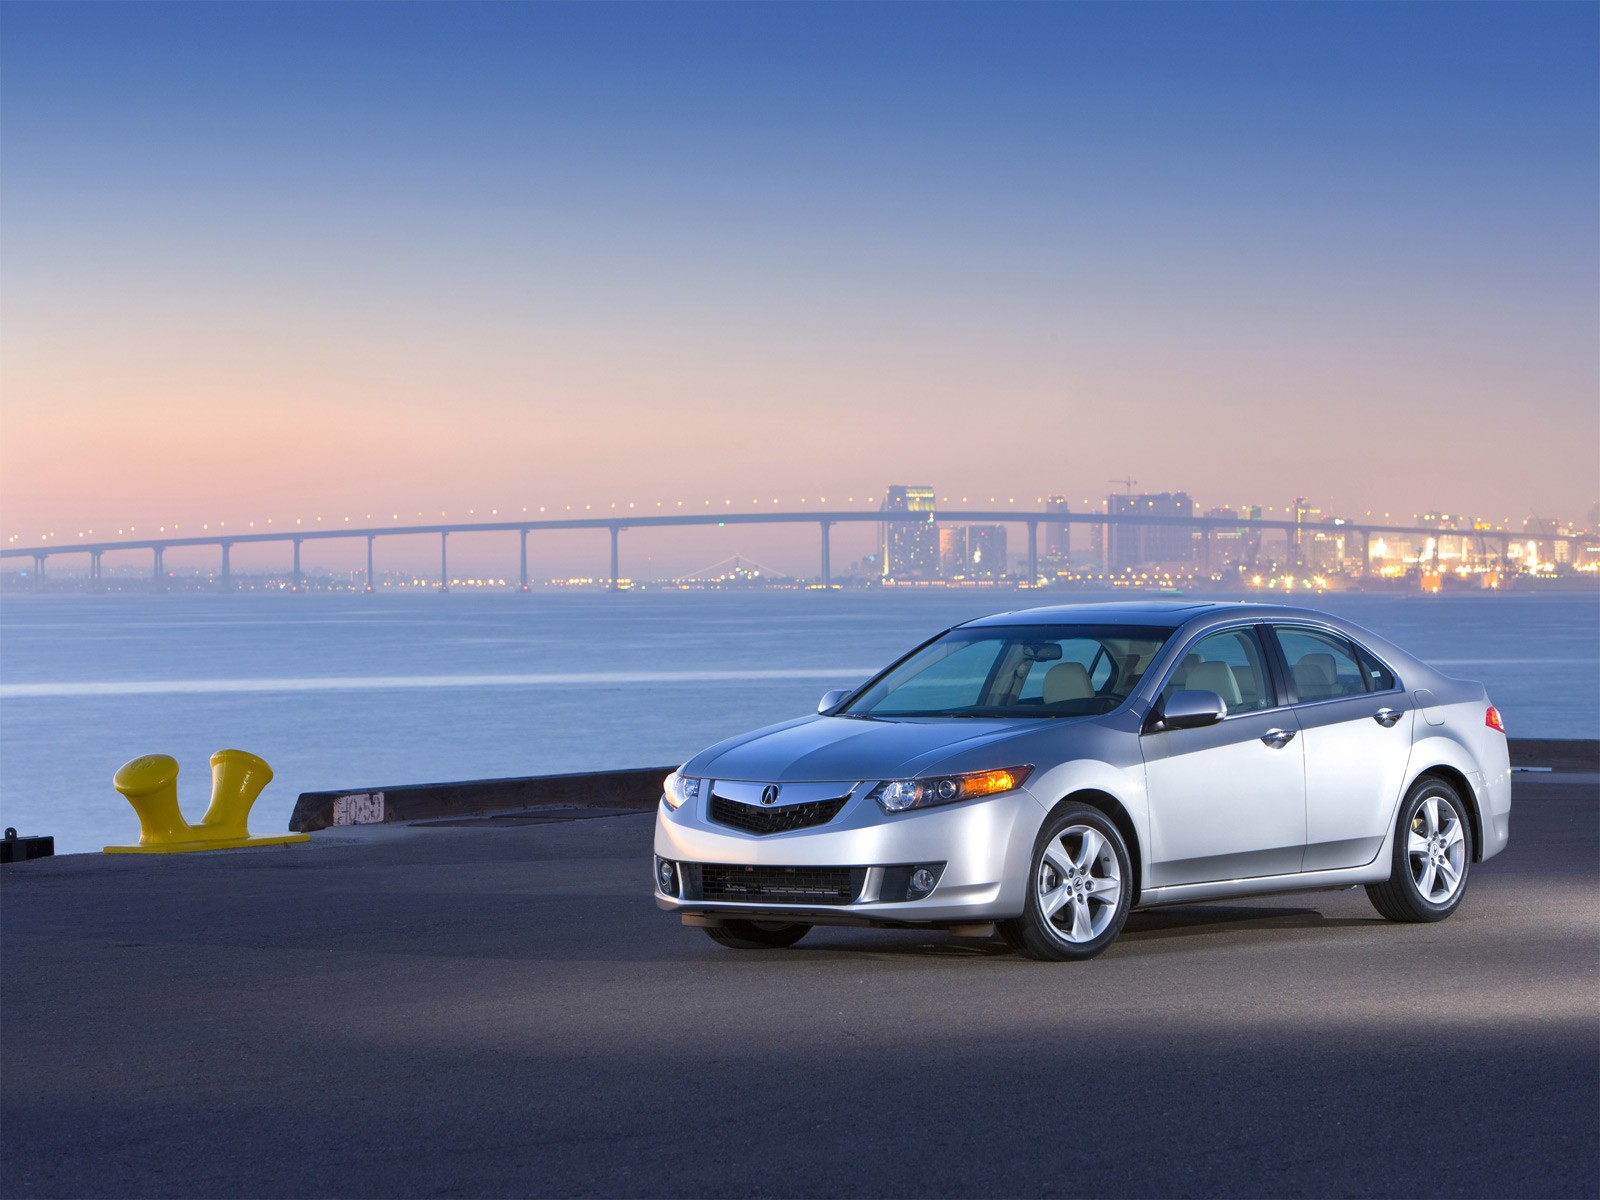 1600x1200 - Acura TSX Wallpapers 8